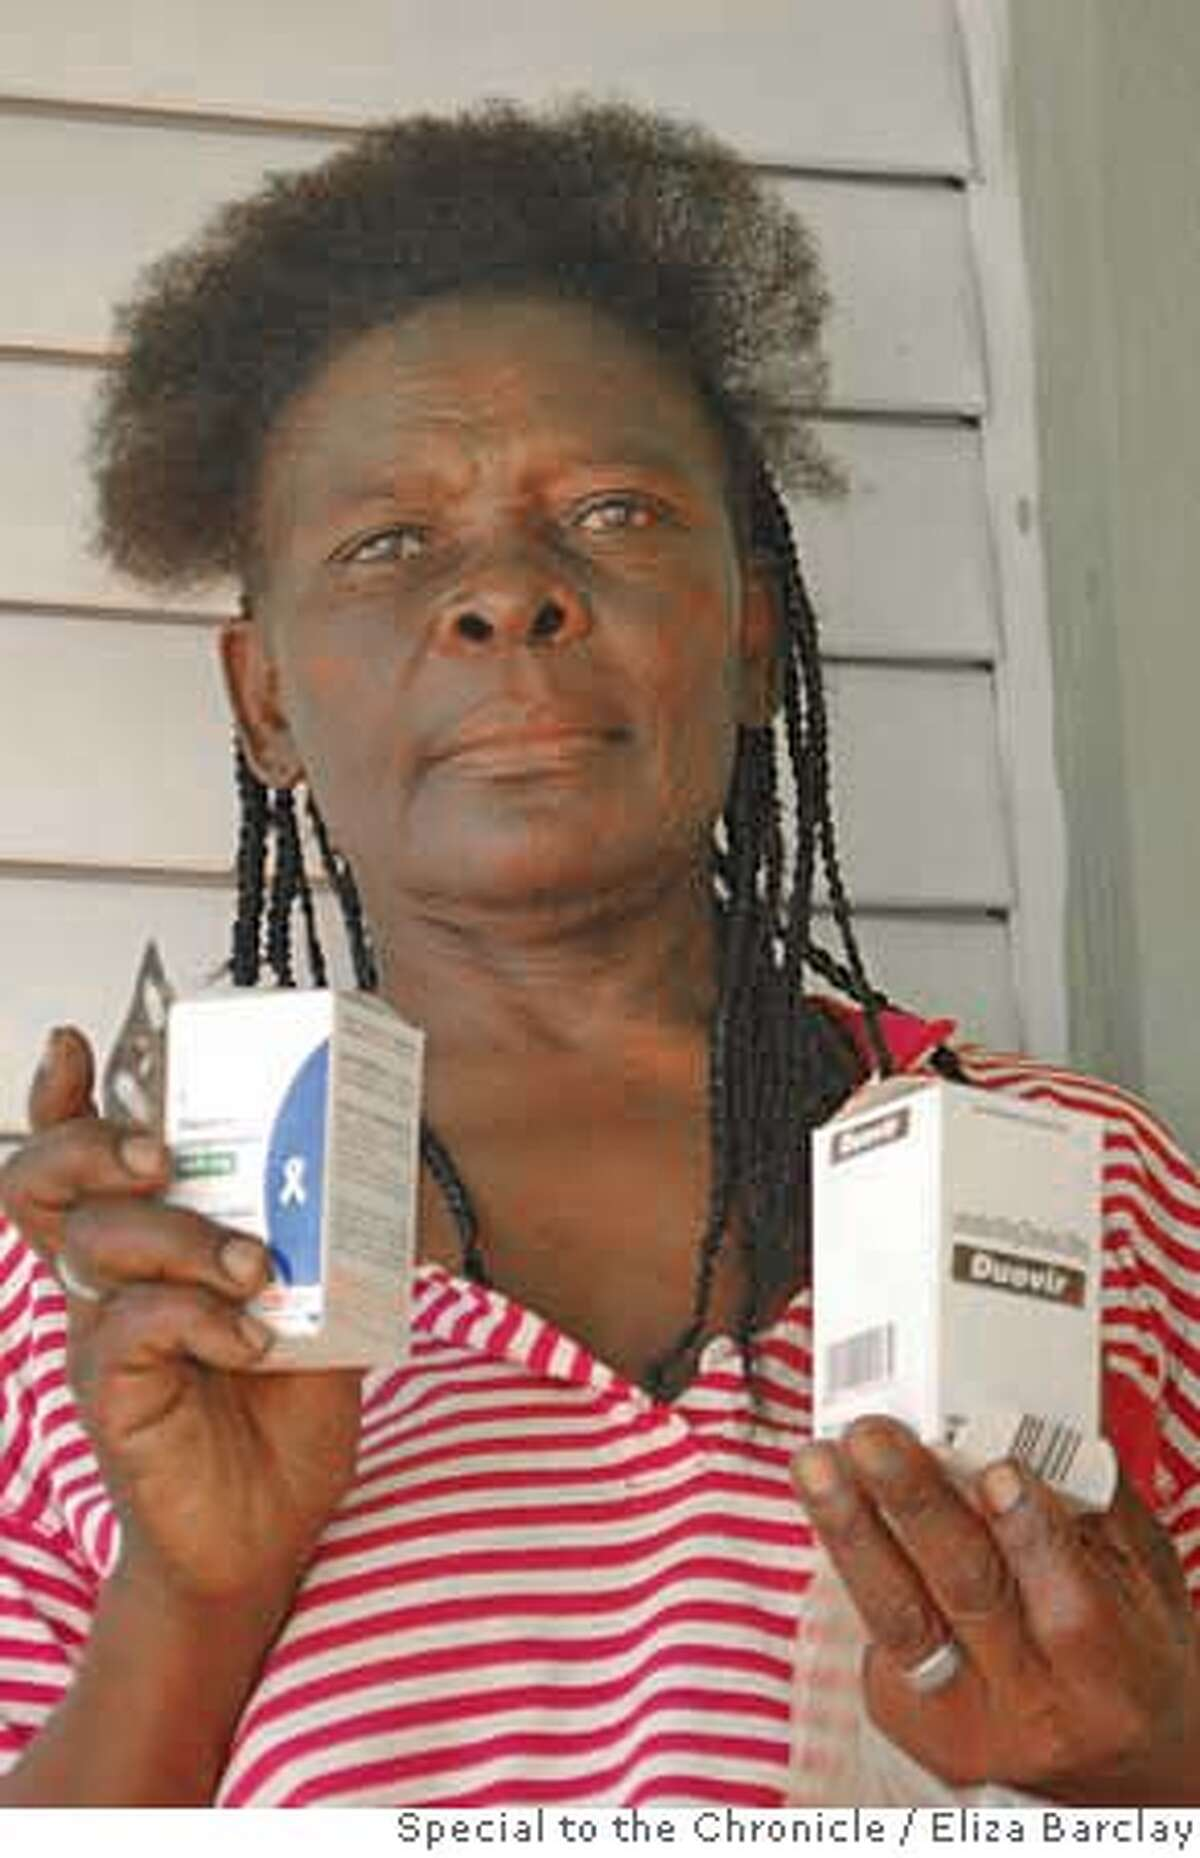 Amelia Cayo, 53, is part Haitian and an AIDS patient in the Cinco Casas bateye receiving free antiretroviral therapy from the medical center here. She began treatment earlier this year and was diagnosed with HIV nine years ago. Photo by Eliza Barclay/Special to The Chronicle